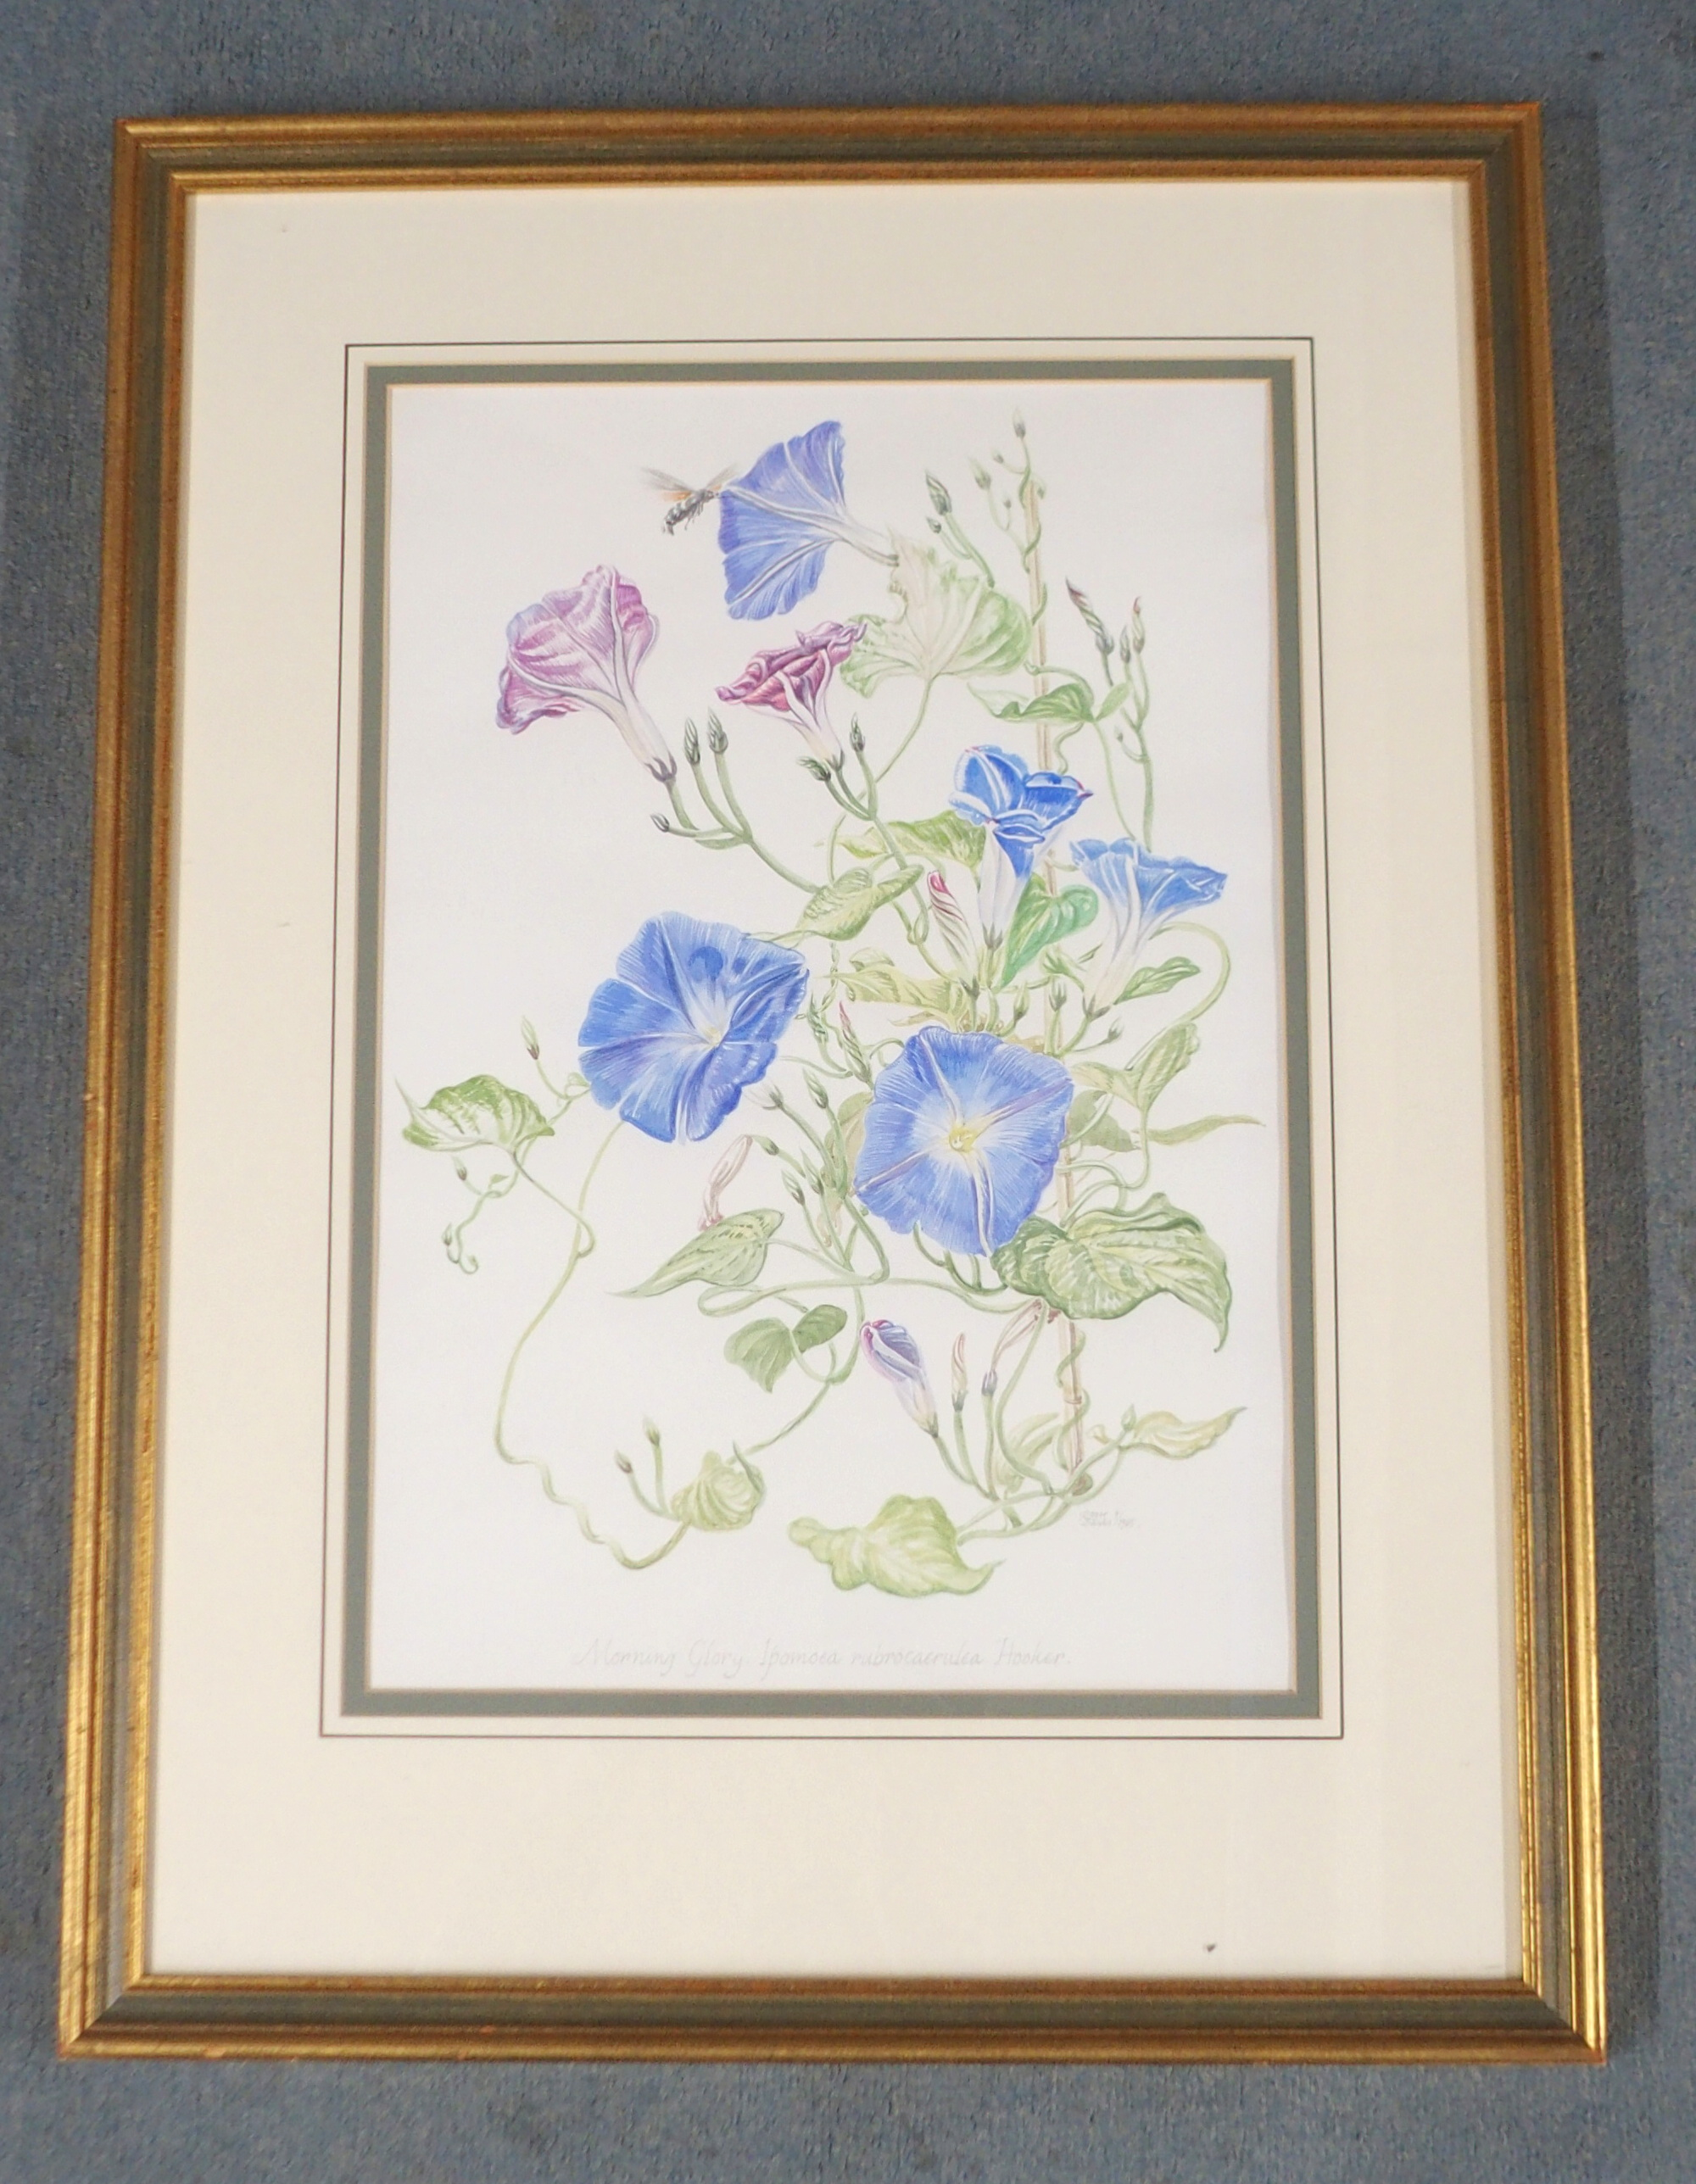 •ROGER BANKS (SCOTTISH 1929-2008) MORNING GLORY watercolour, signed, inscribed and dated, 1985, 52 x - Image 2 of 5